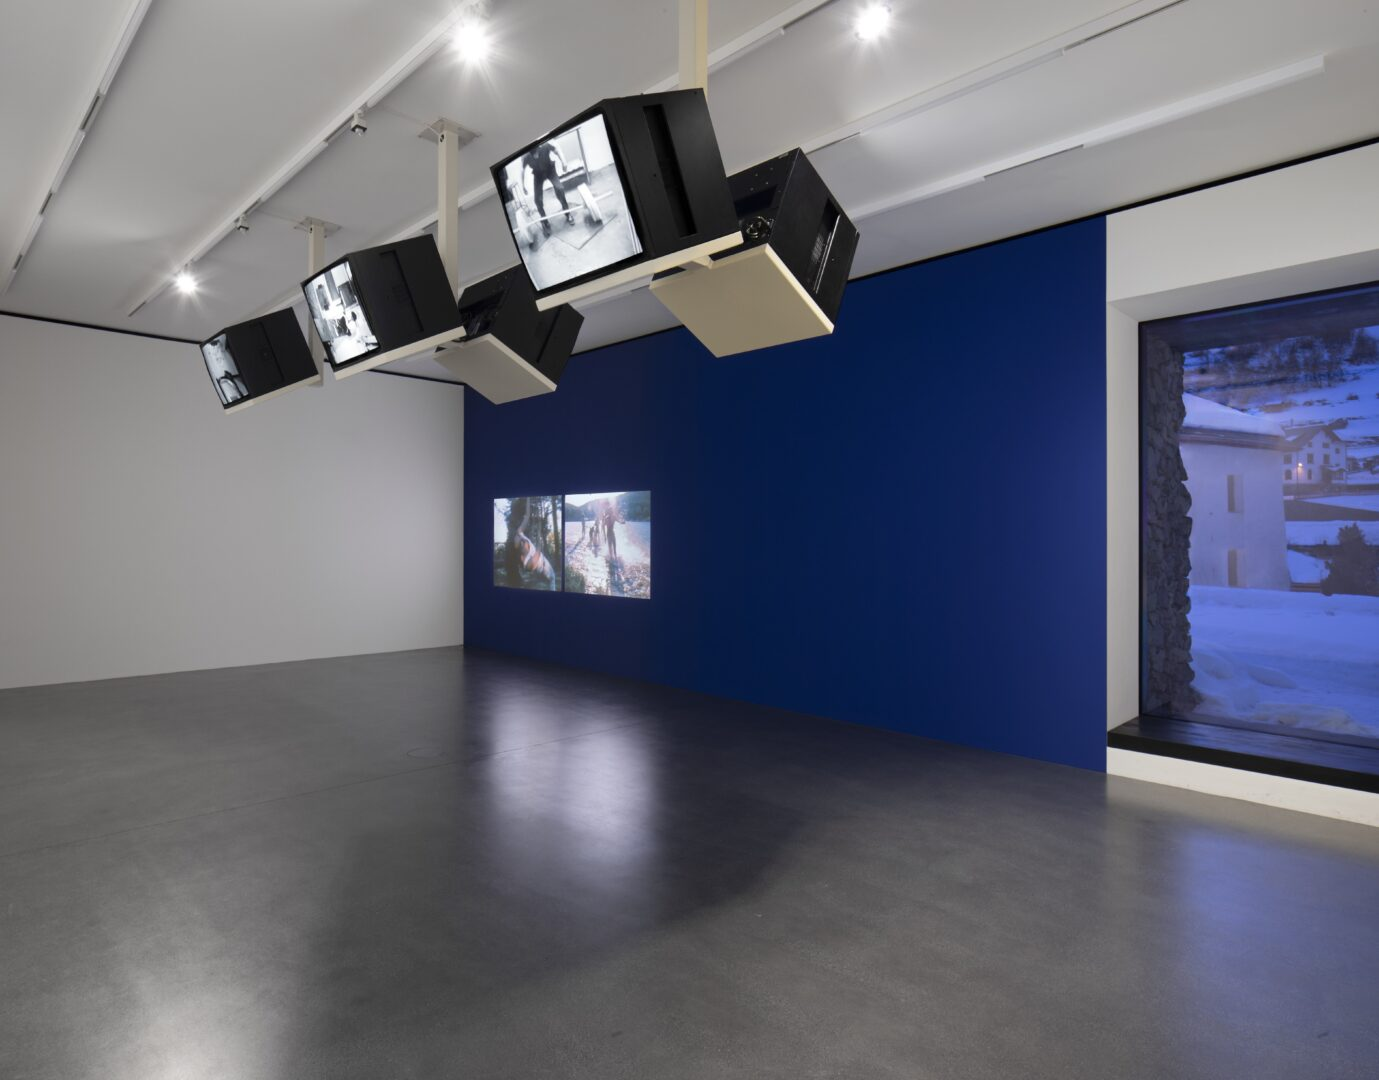 Exhibition View Groupshow «Up to and Including Limits: After Carolee Schneemann; view on Matthew Barney, from the Drawing Restraint series, 1988 and Carolee Schneemann, Water Light / Water Needle, 1966» at Muzeum Susch, Susch, 2019-2020 / Photo: Maja Wirkus / Courtesy: the artist and Muzeum Susch